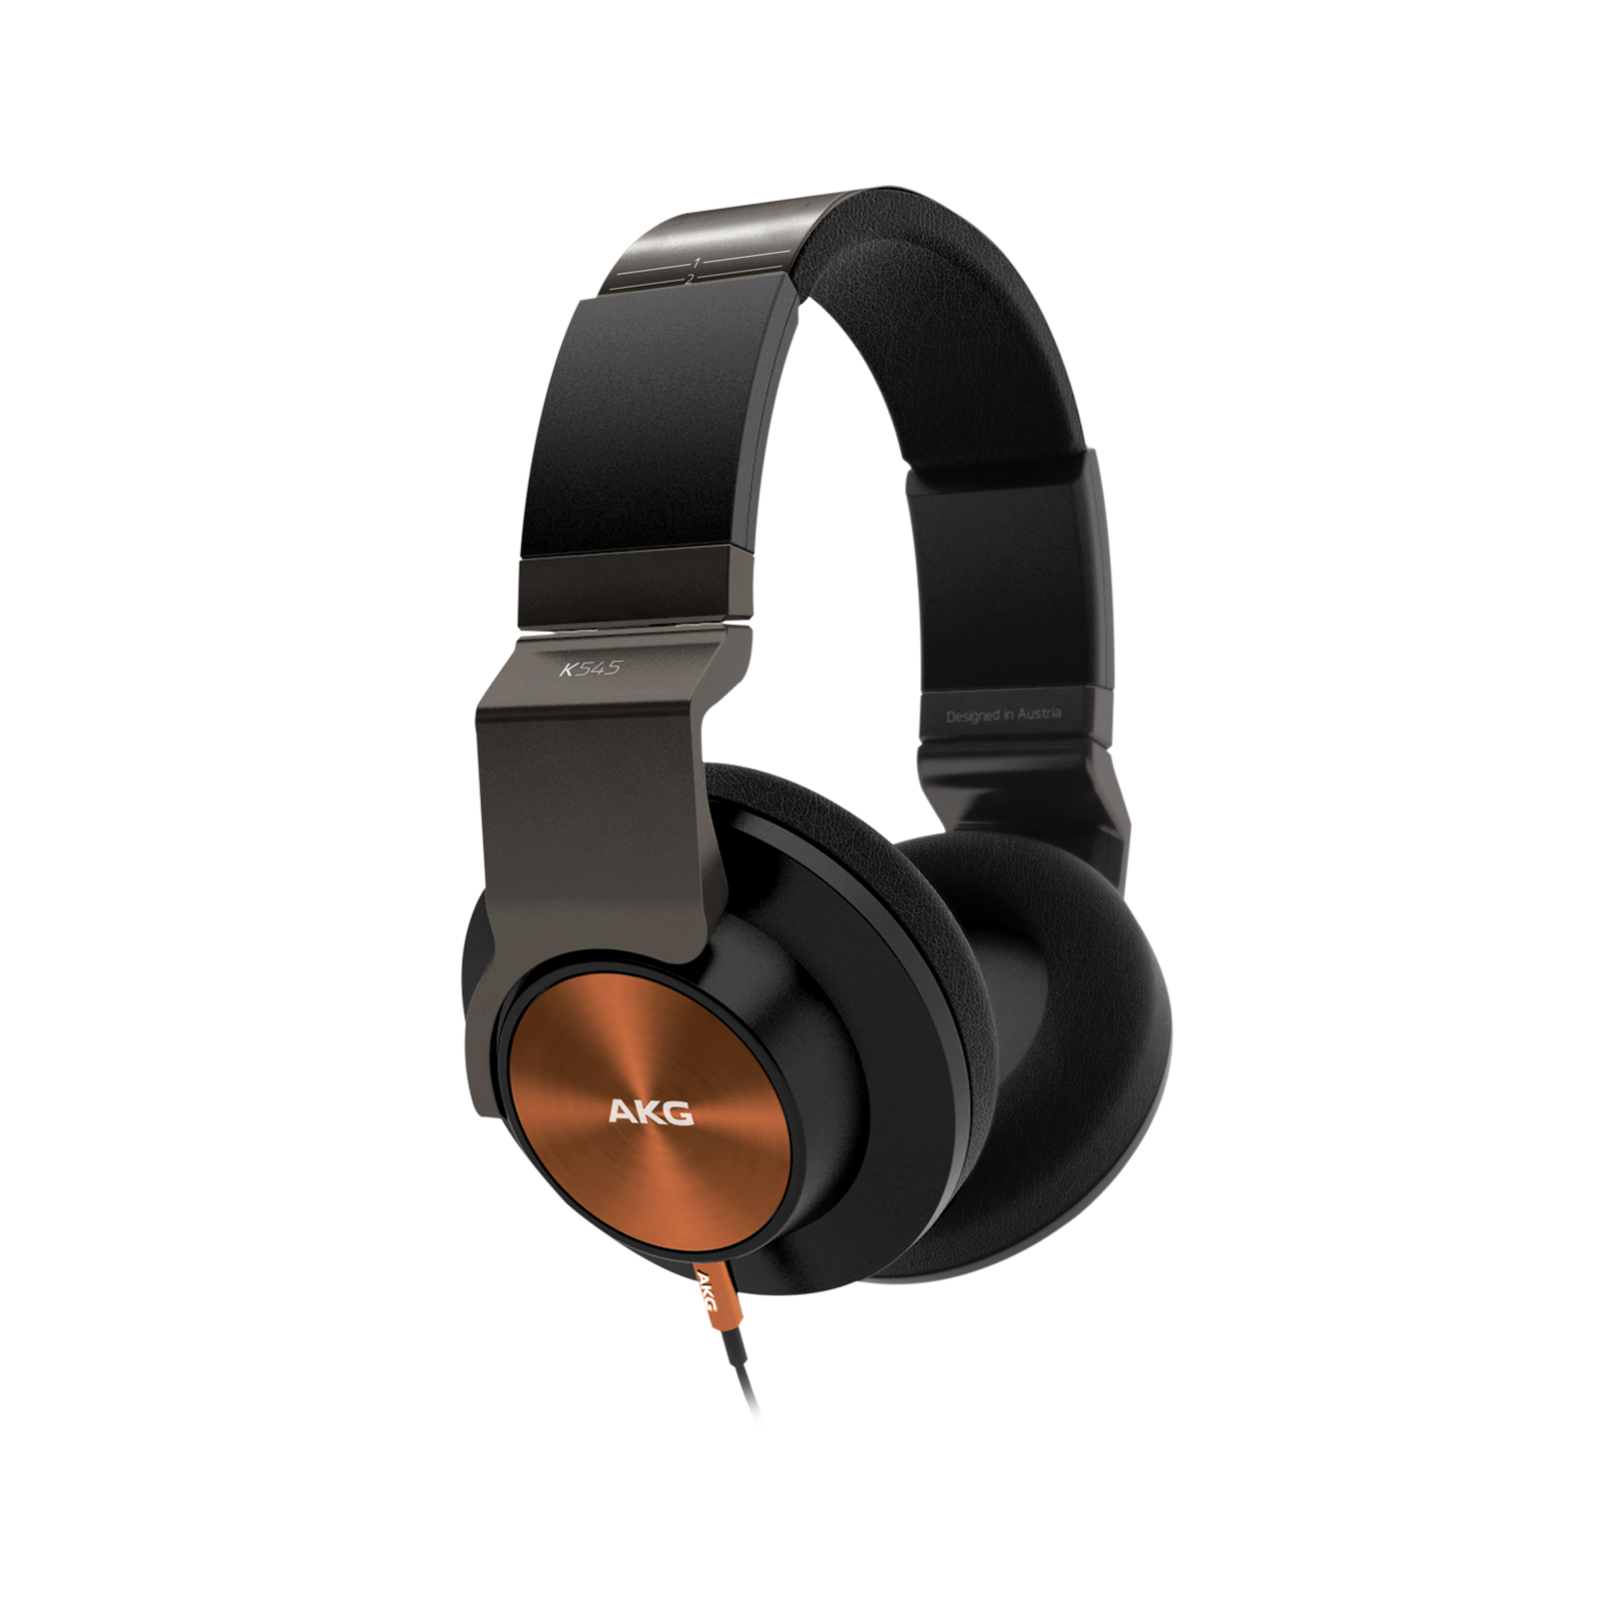 K 545 - Orange / Black - High performance over-ear headphones with microphone and remote - Hero